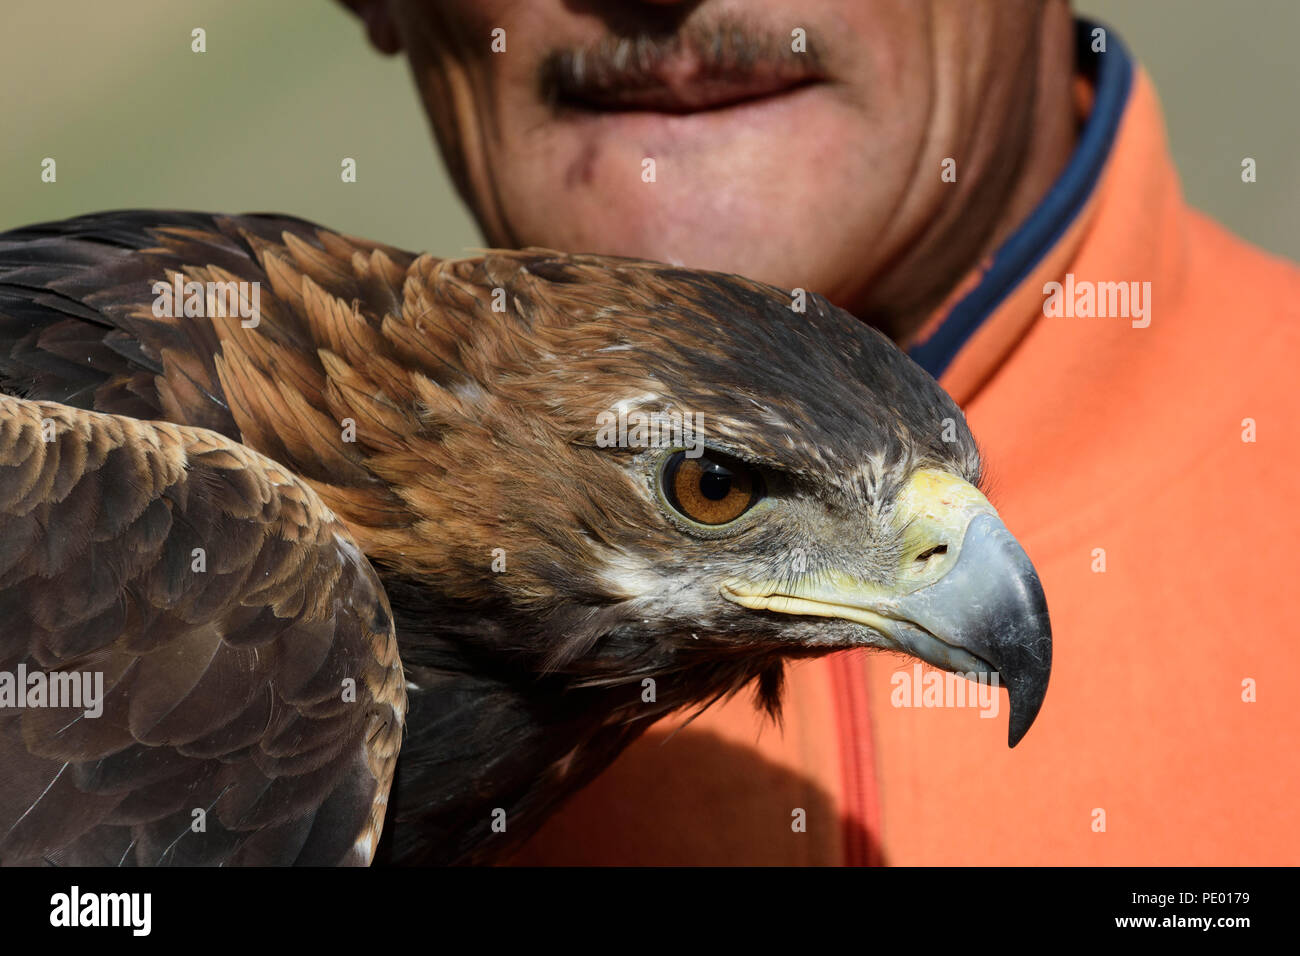 A Kazakh eagle hunter with his golden eagle in Bayan-Olgii, Mongolia. - Stock Image